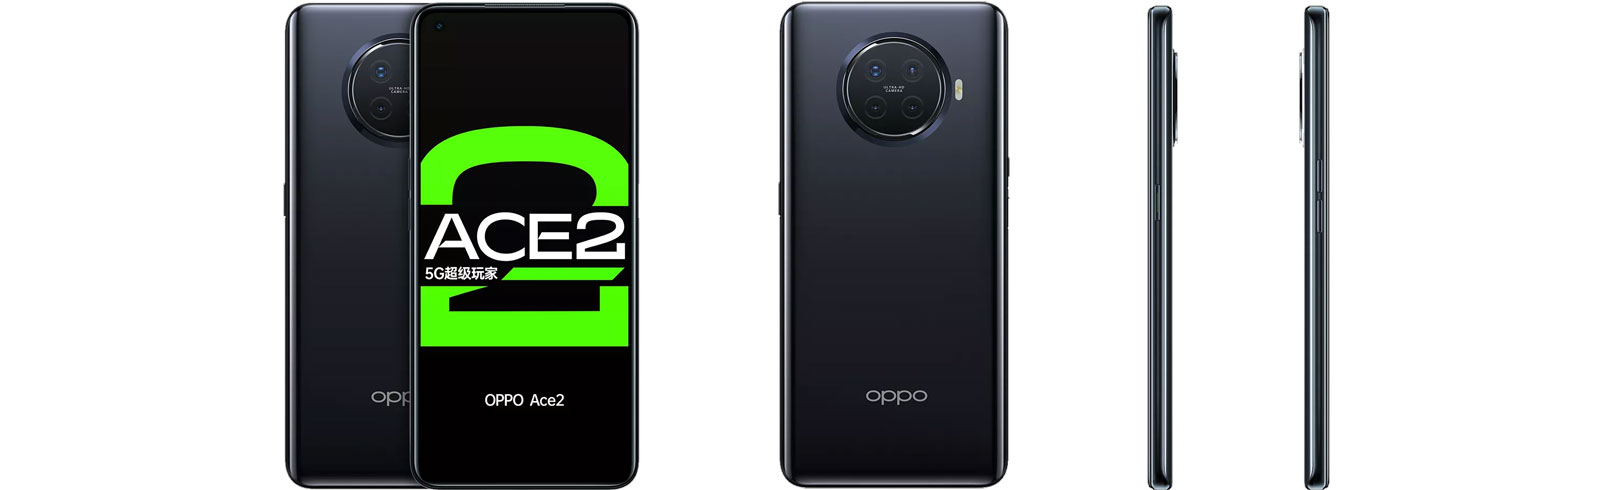 Oppo Ace2 specifications, price, availability